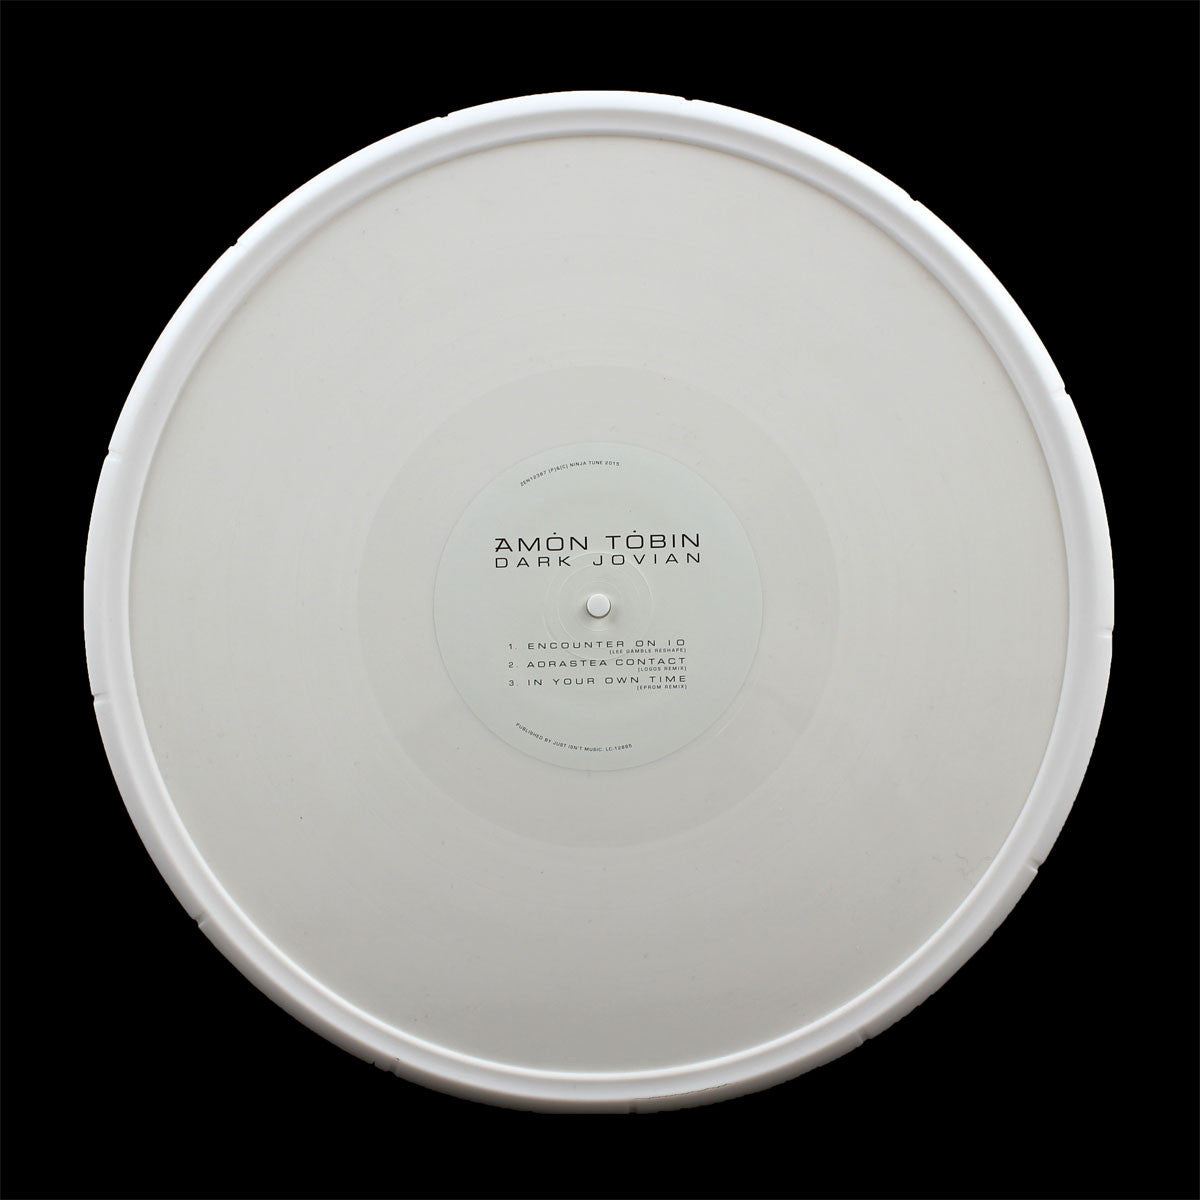 "Amon Tobin: Dark Jovian EP Vinyl 2x12"" (Record Store Day) - LIMIT 1 PER CUSTOMER"